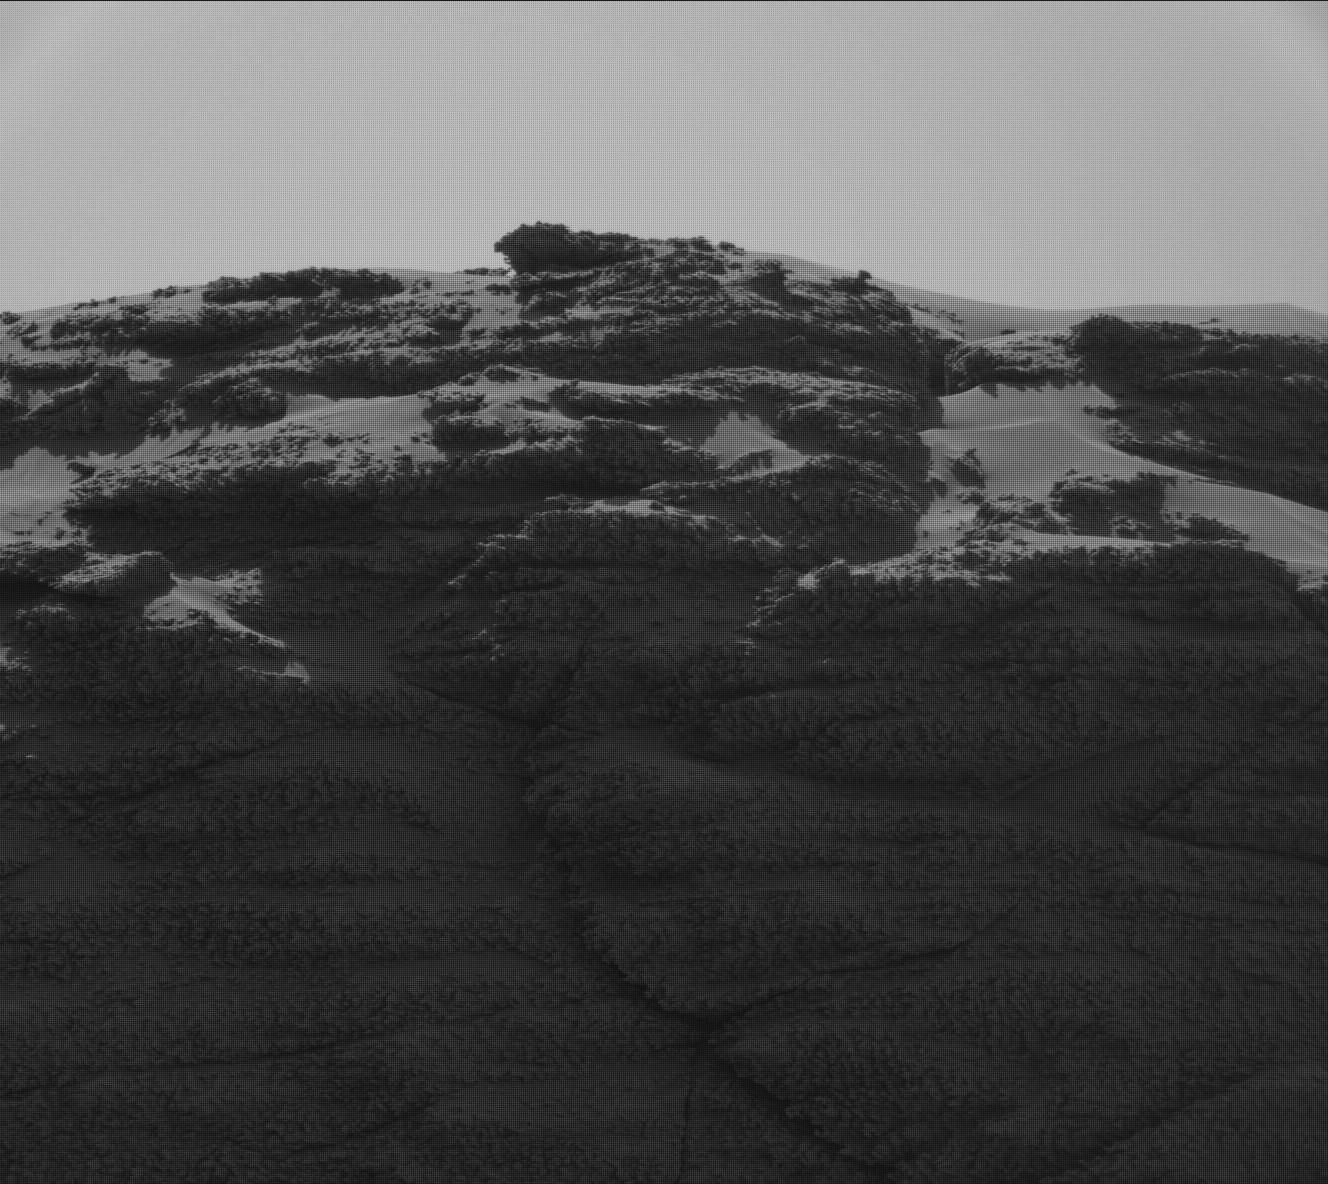 Nasa's Mars rover Curiosity acquired this image using its Mast Camera (Mastcam) on Sol 3190